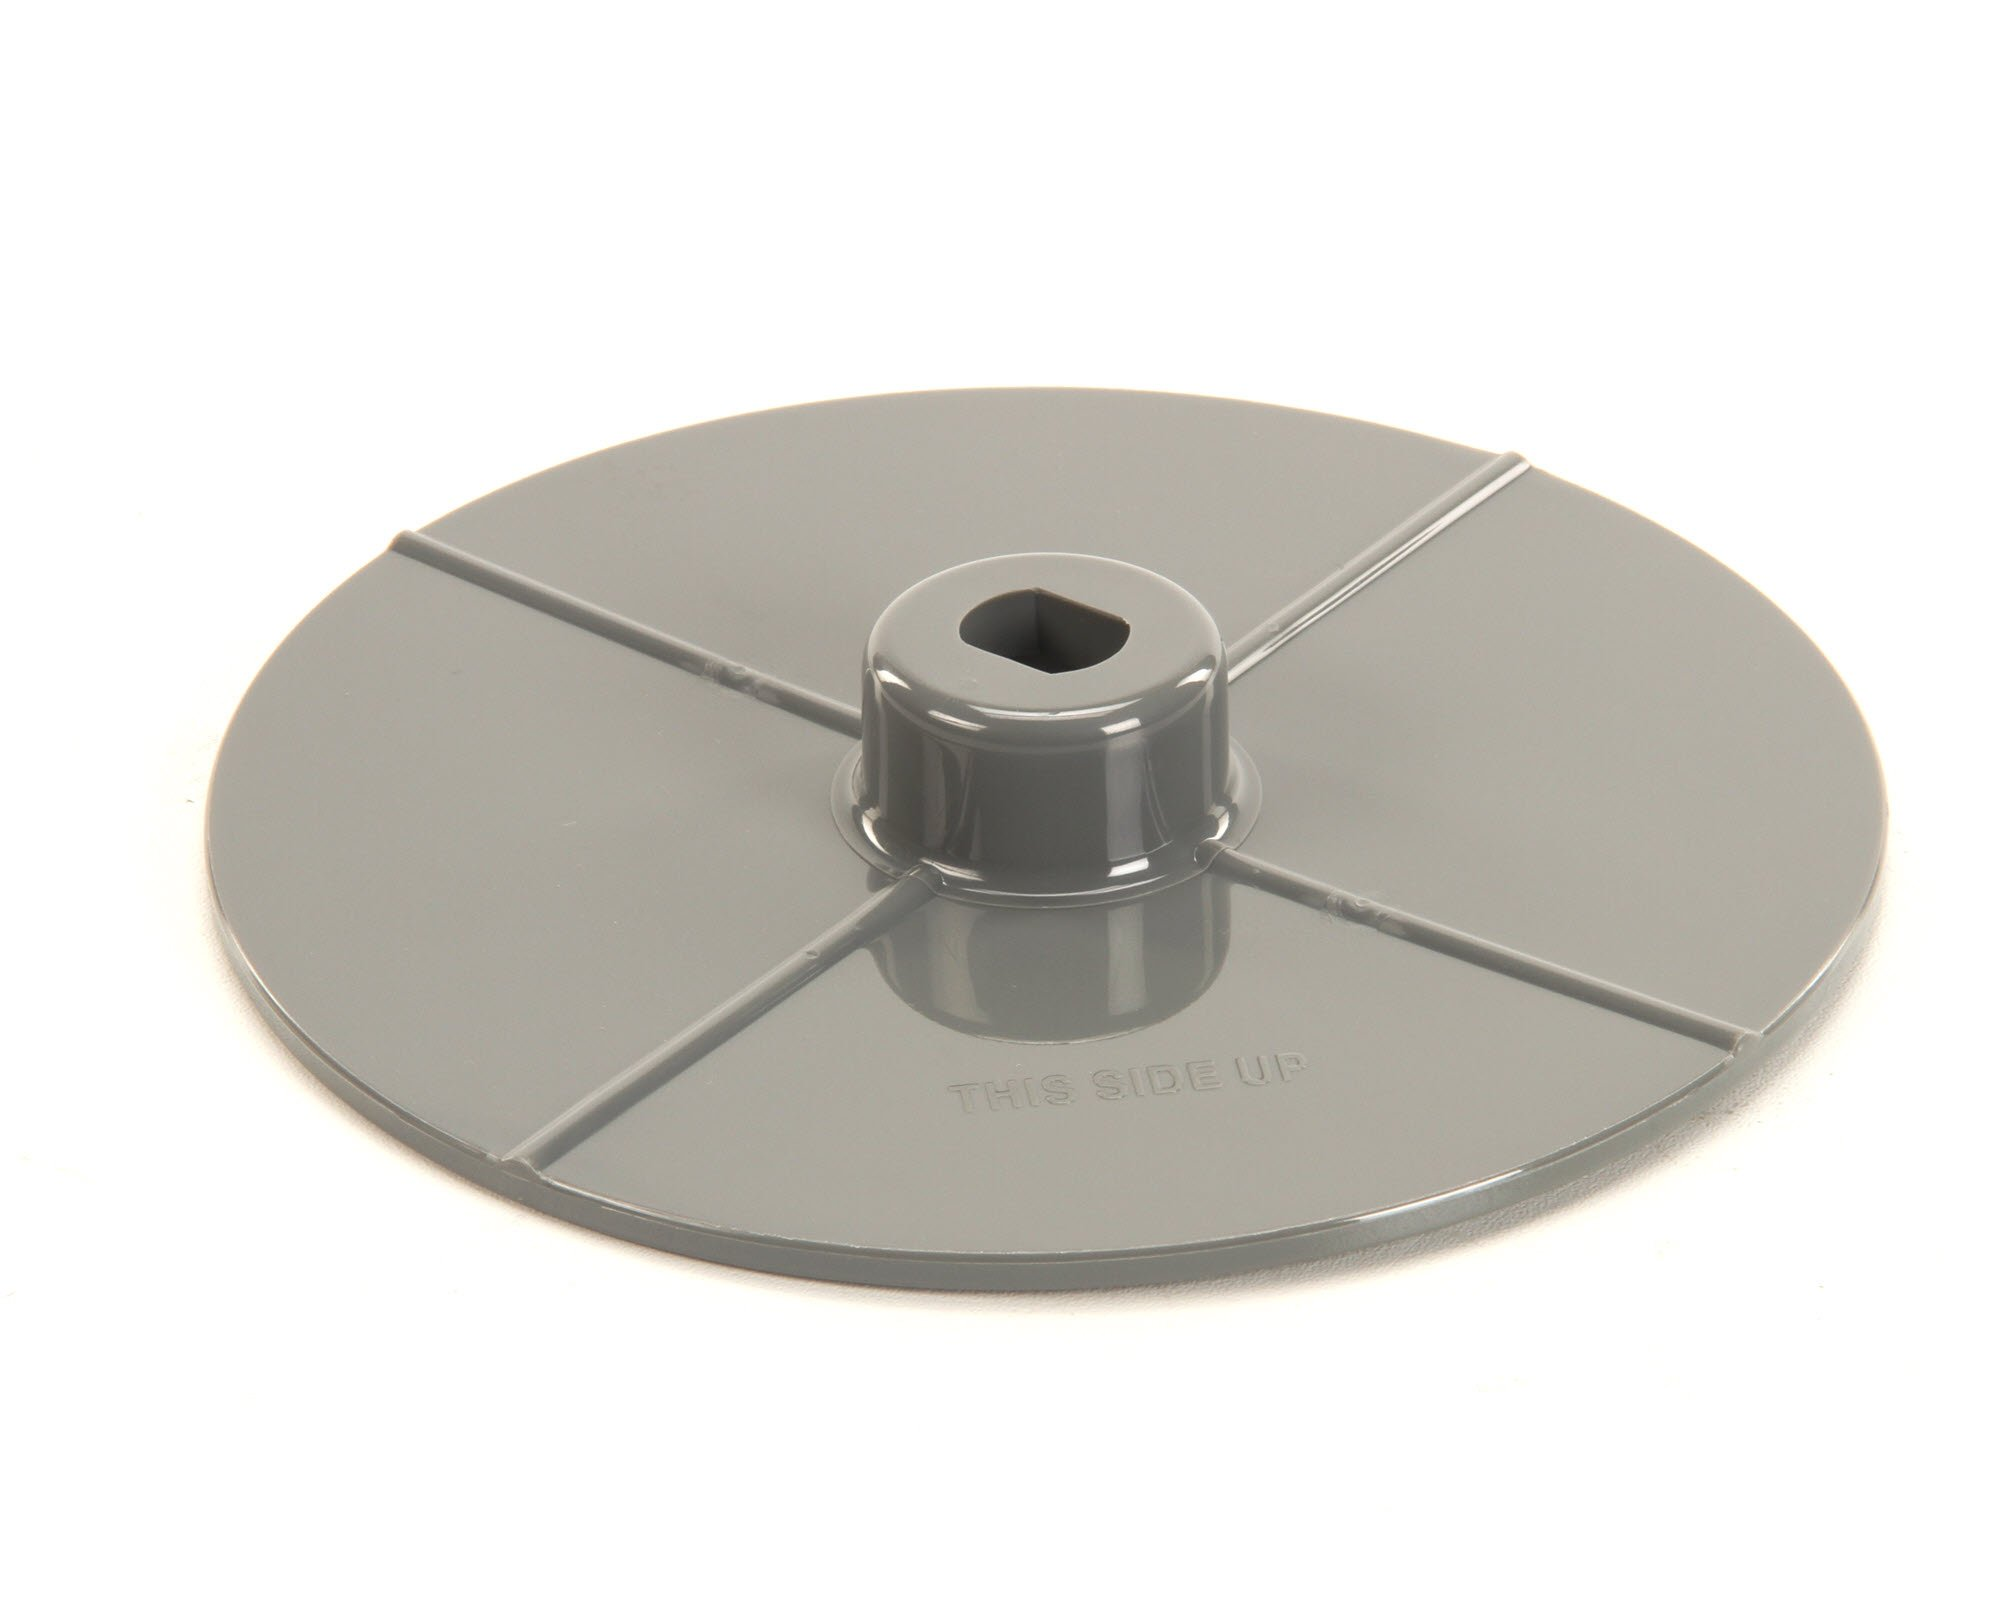 Waring 025477 Ejector Disc for FP25 and FP25C